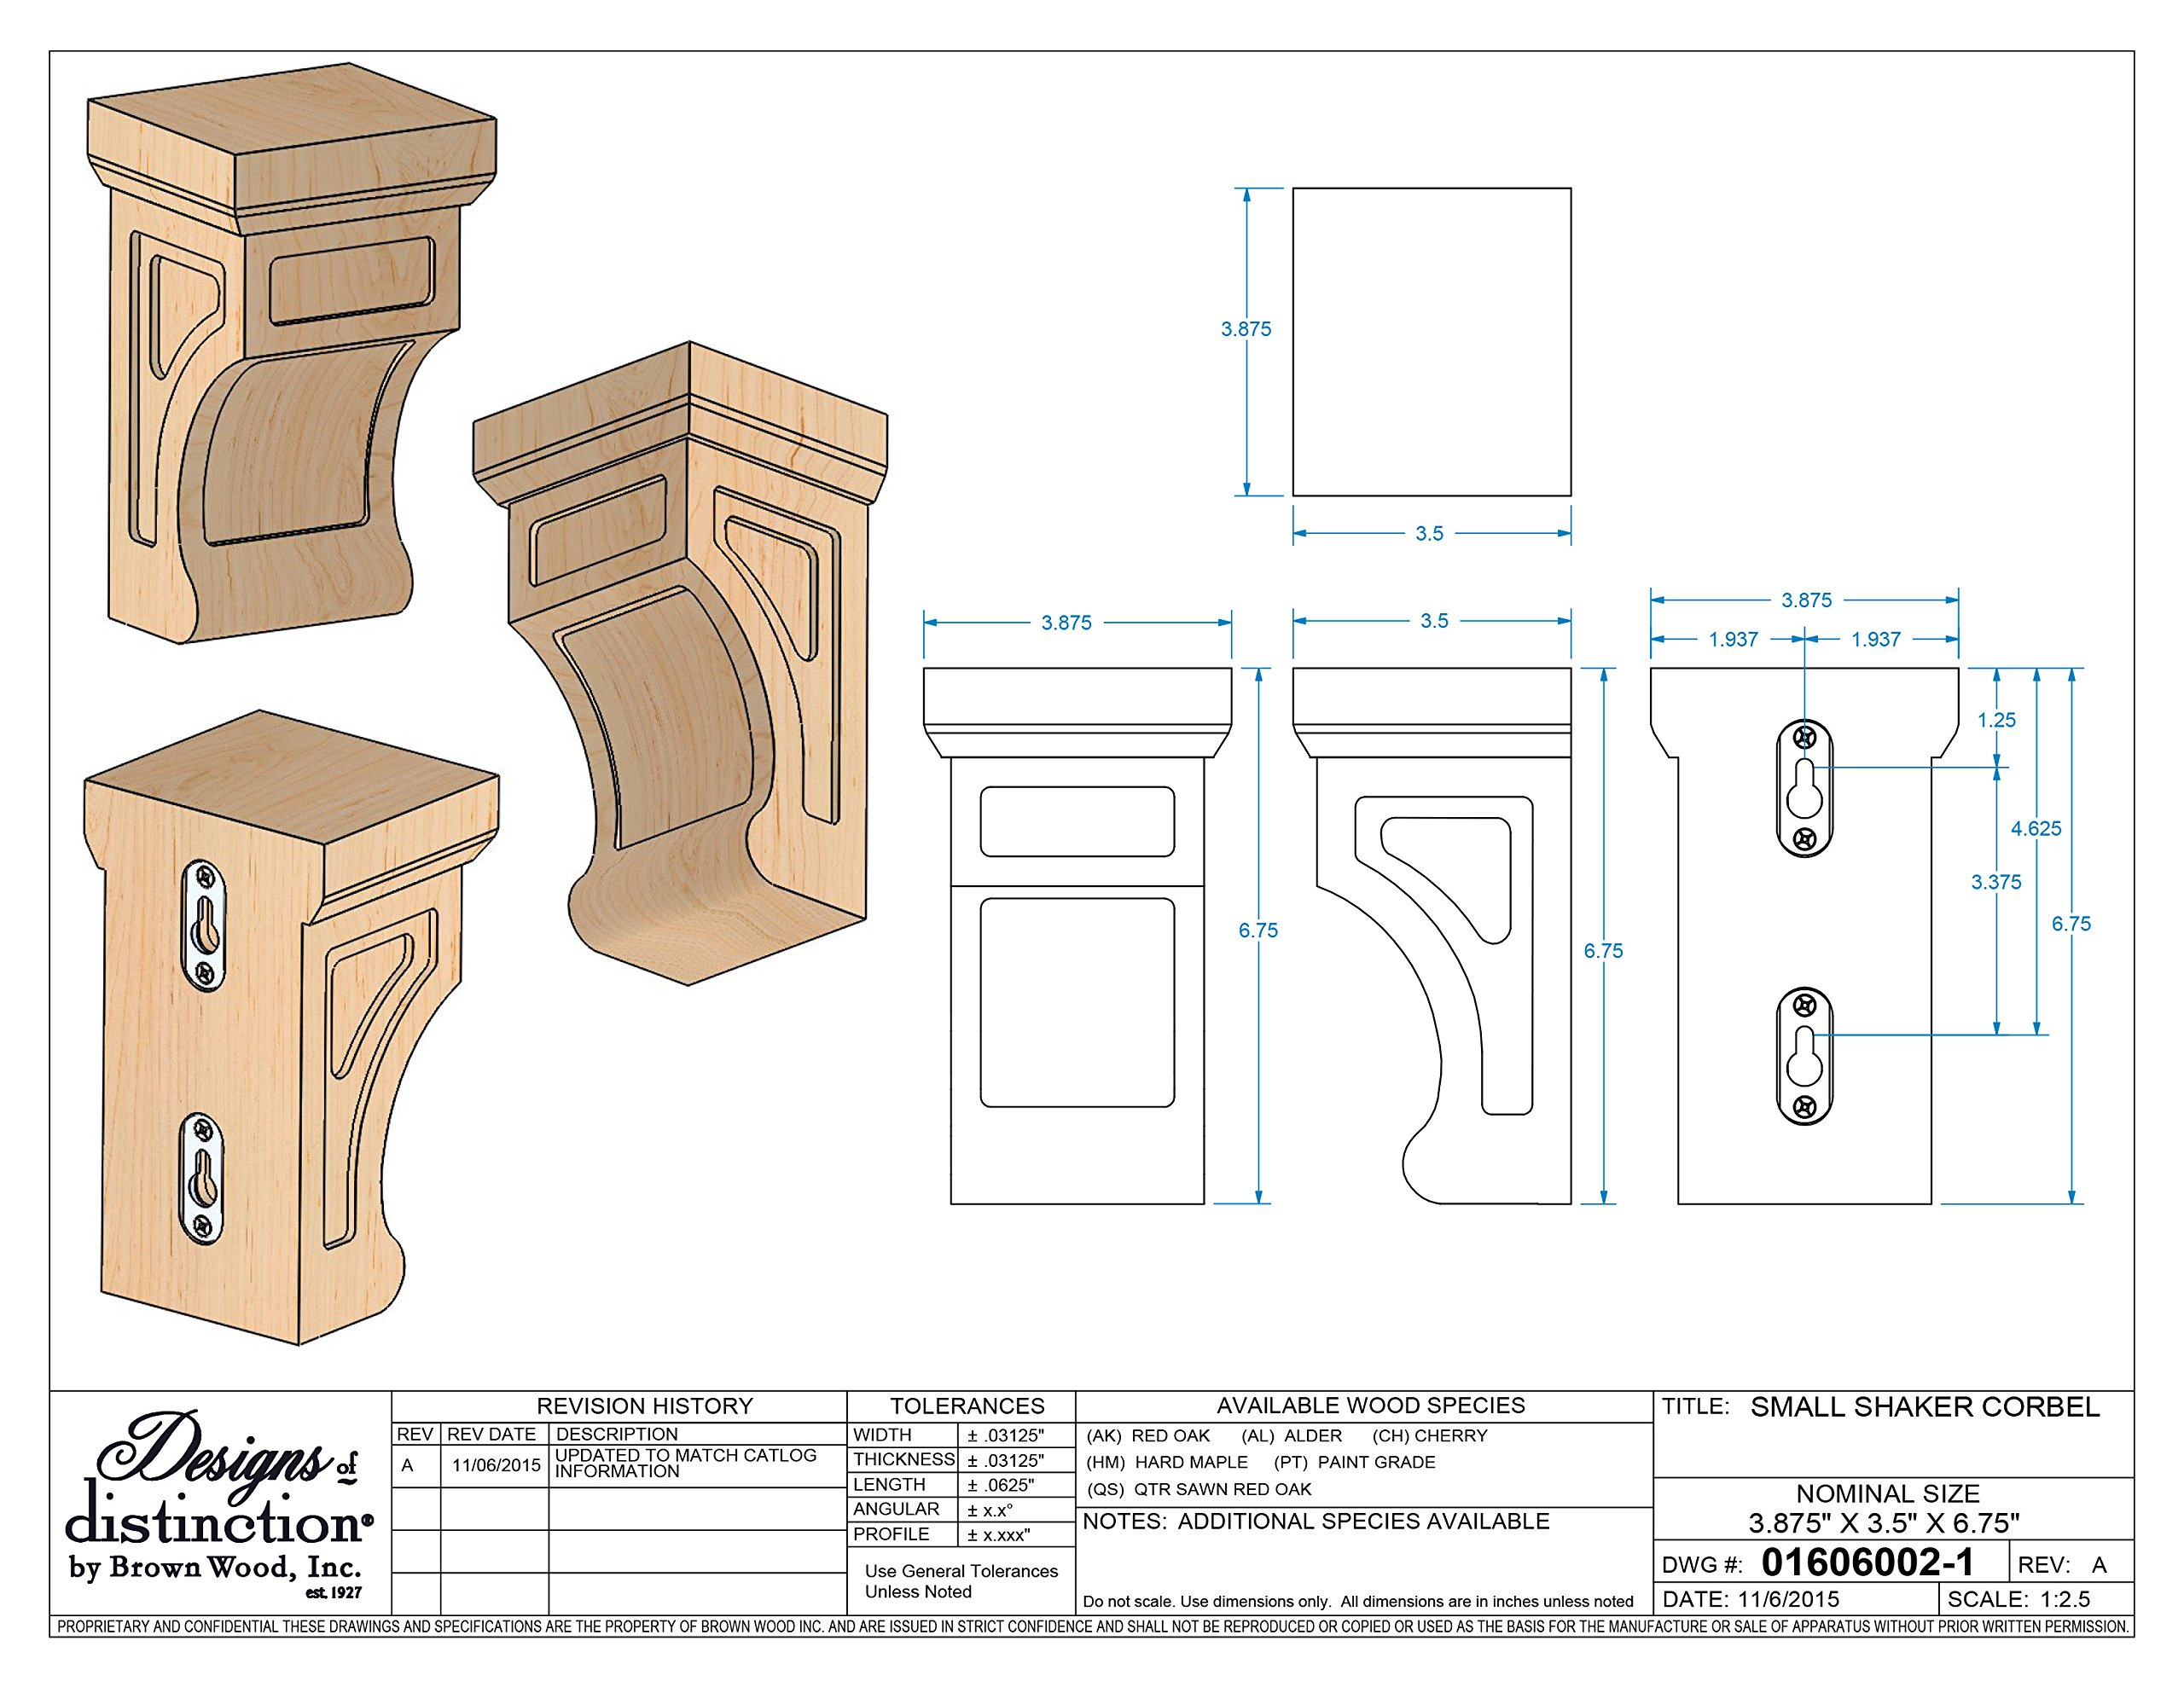 Brown Wood Inc. 01606002AK1 Full Shaker Wood Corbel, Red Oak by Brown Wood Inc.